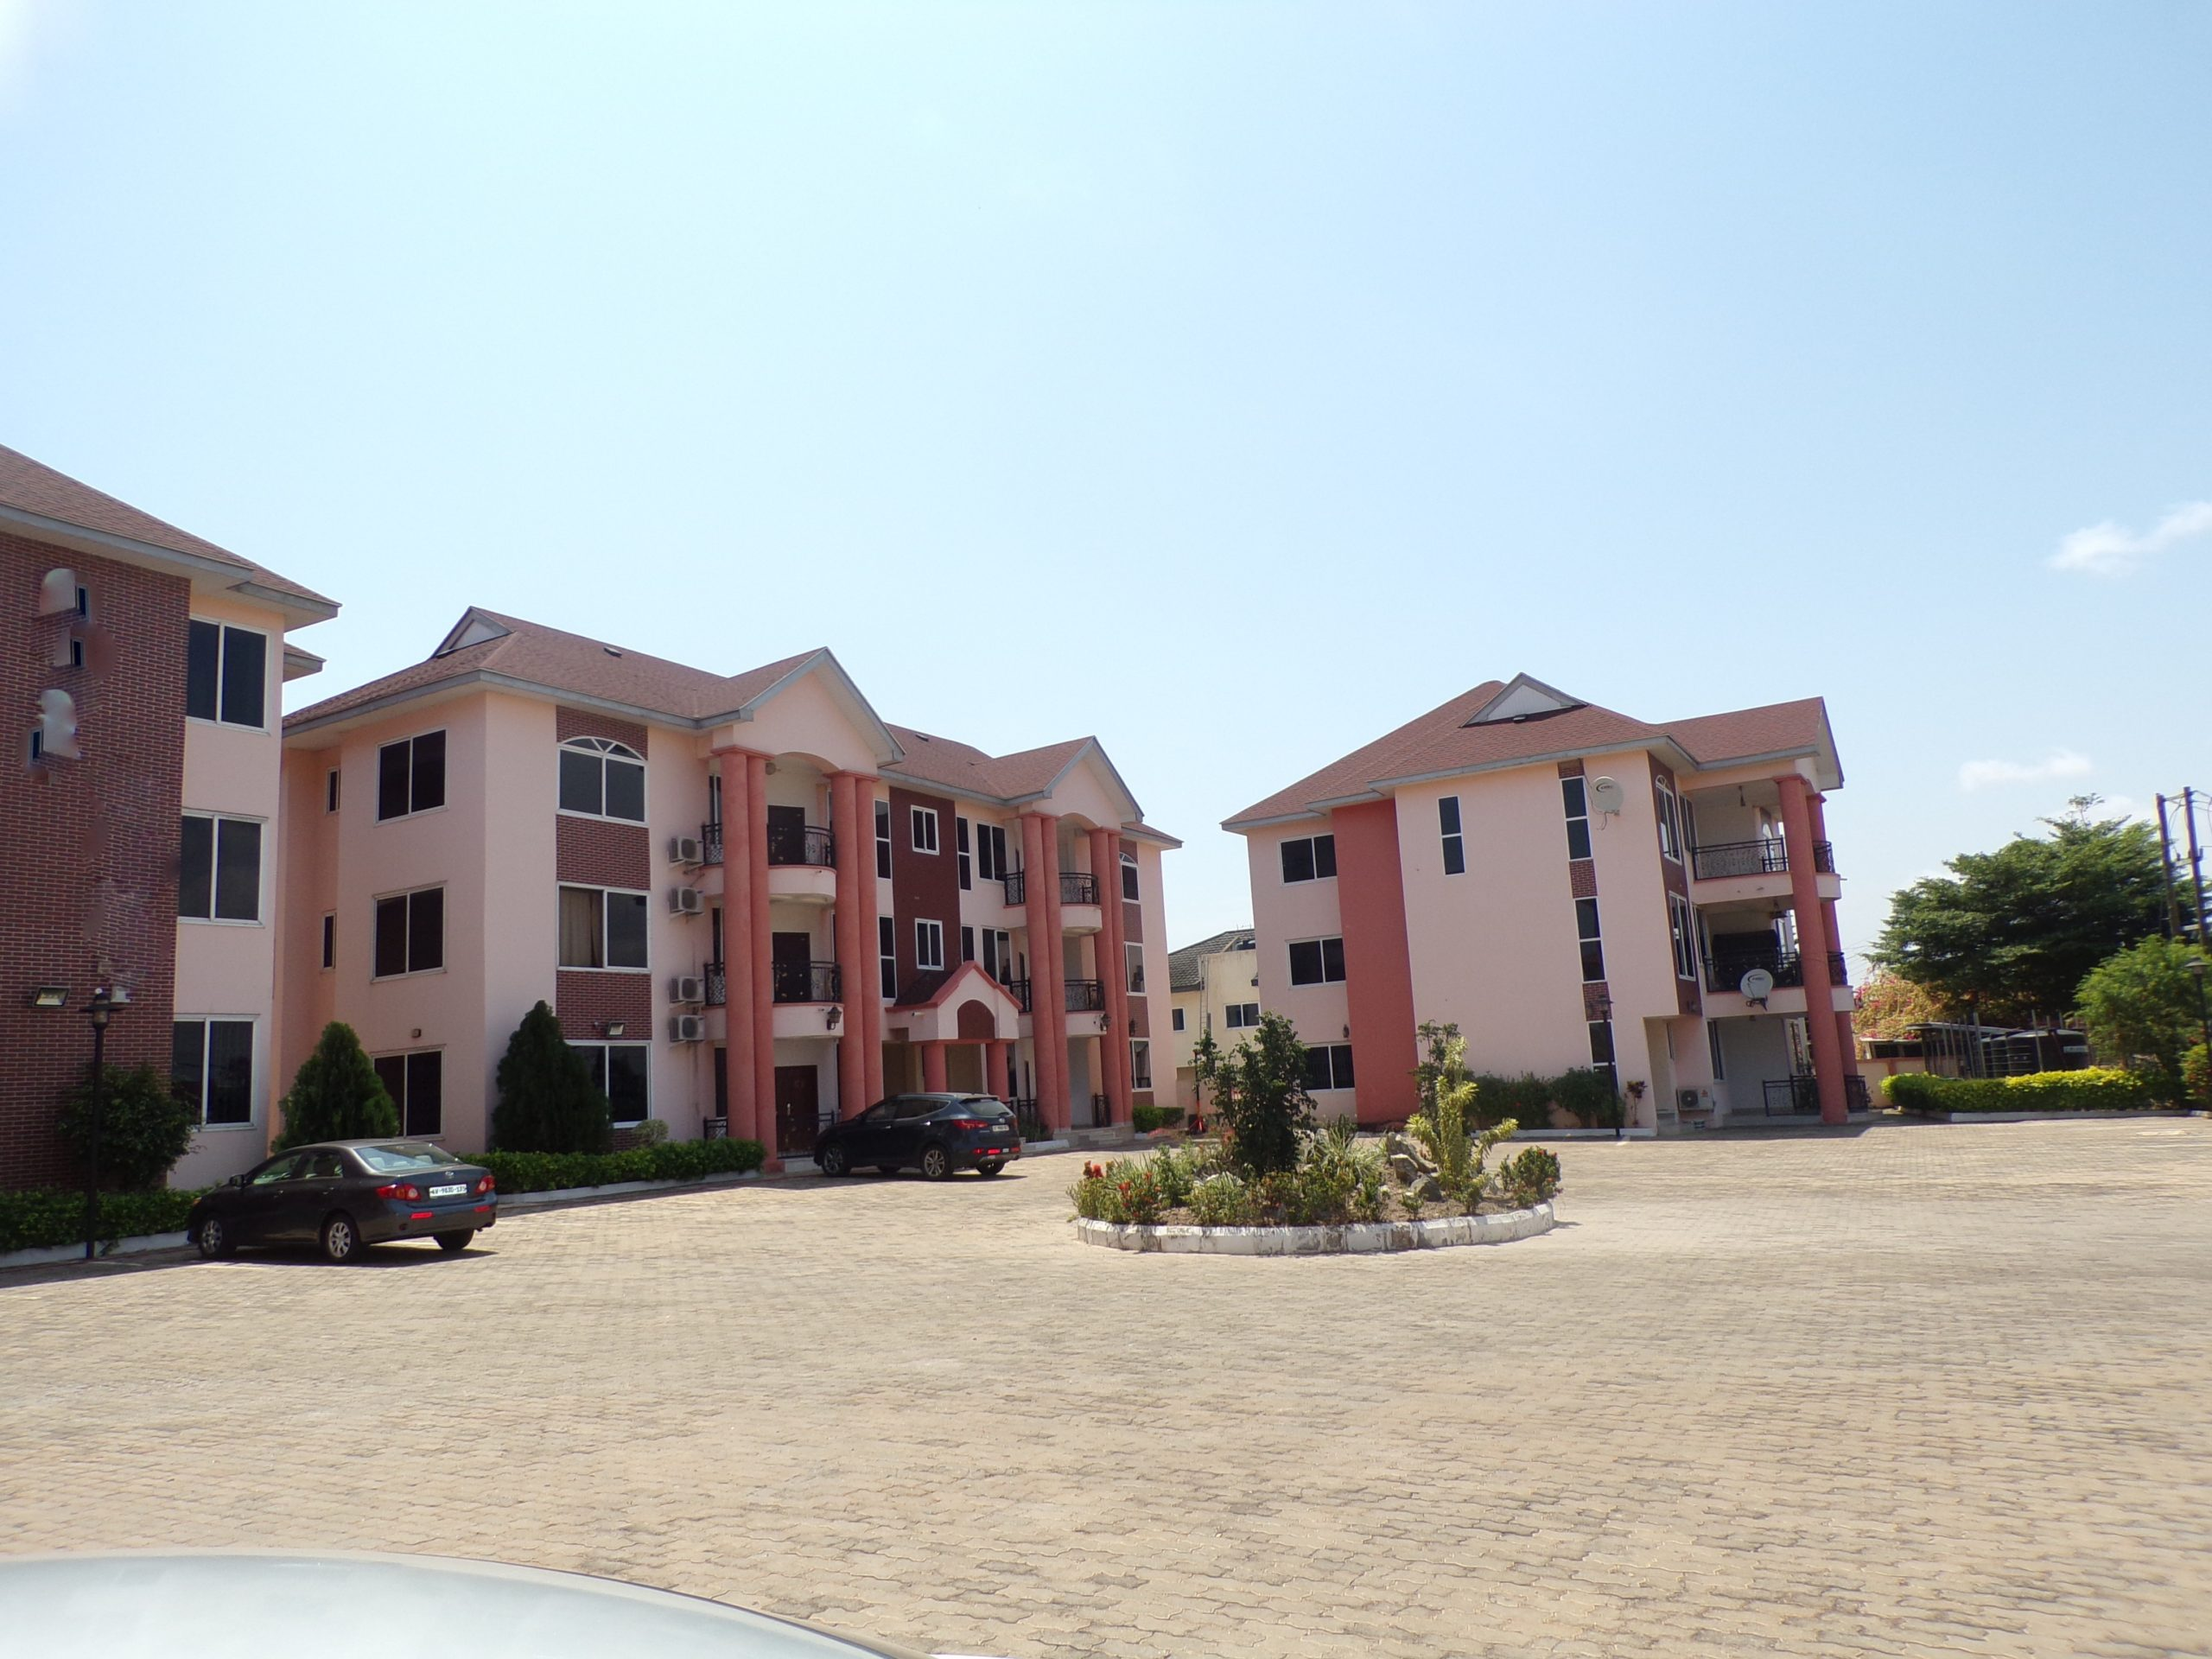 3 bedroom unfurnished apartment for rent in East Legon.